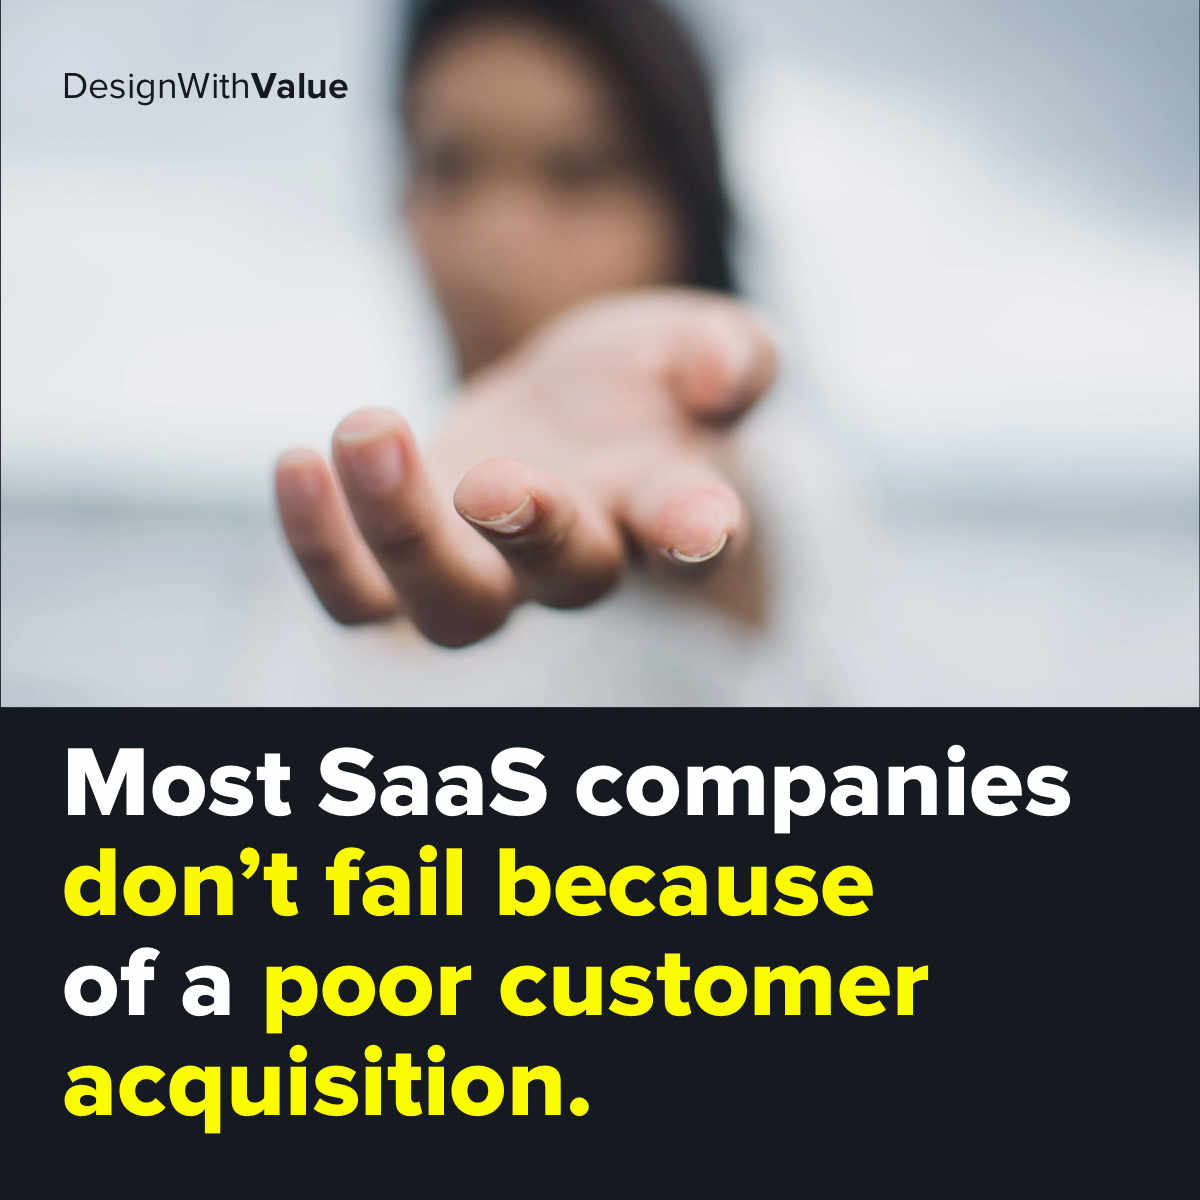 Most saas companies do not fail because of a poor customer acquisition...